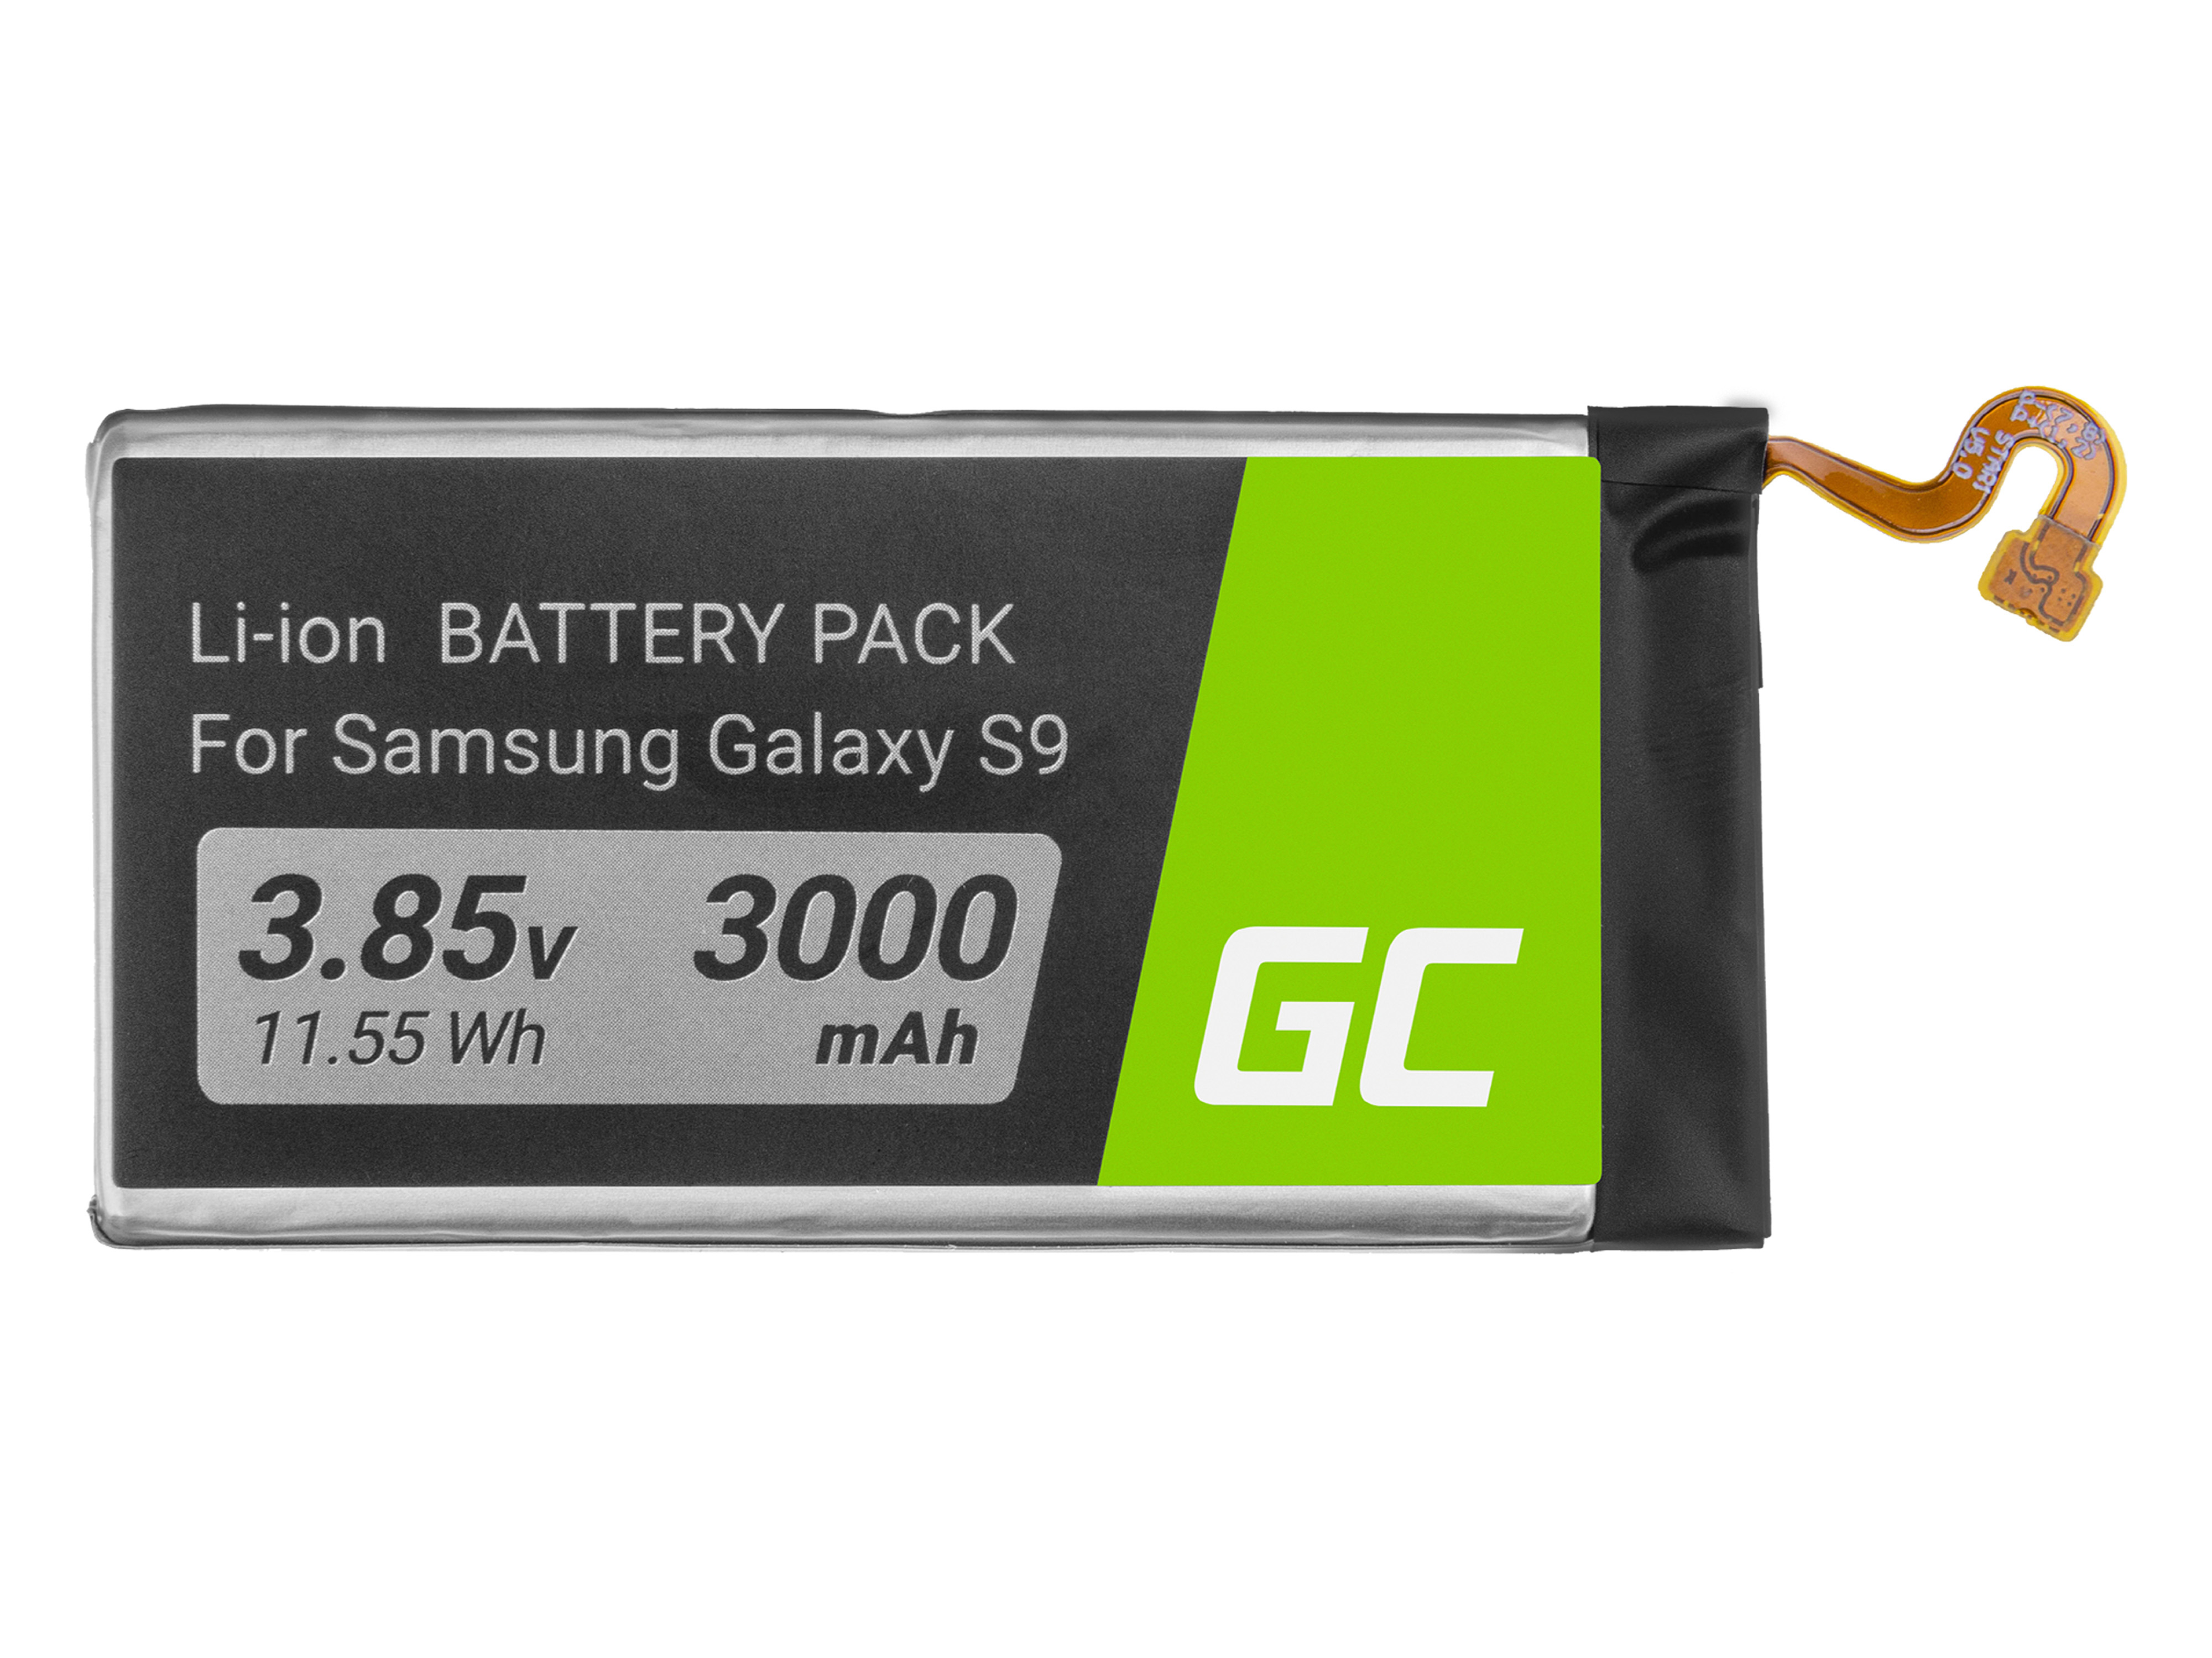 Green Cell Phone Battery EB-BG960ABE for Samsung Galaxy S9 SM-G960